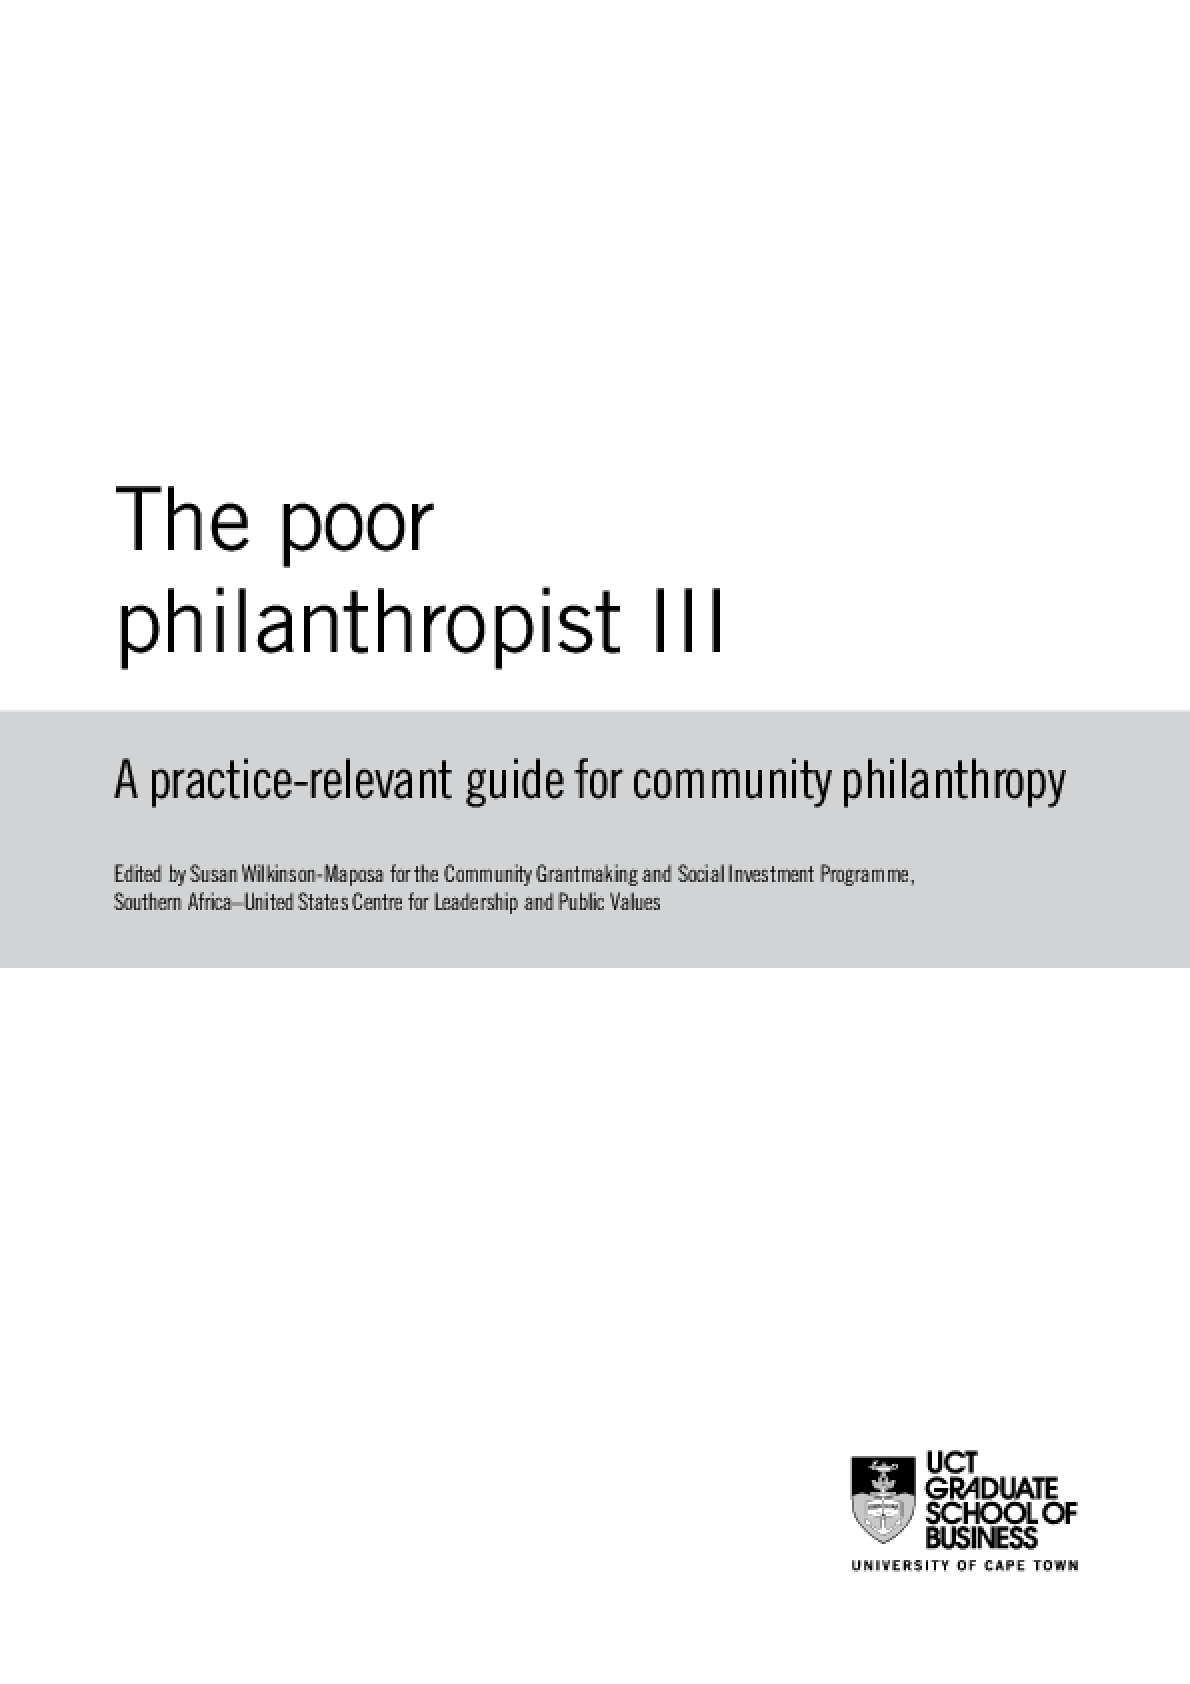 Poor Philanthropist III: A Practice-relevant Guide for Community Philanthropy